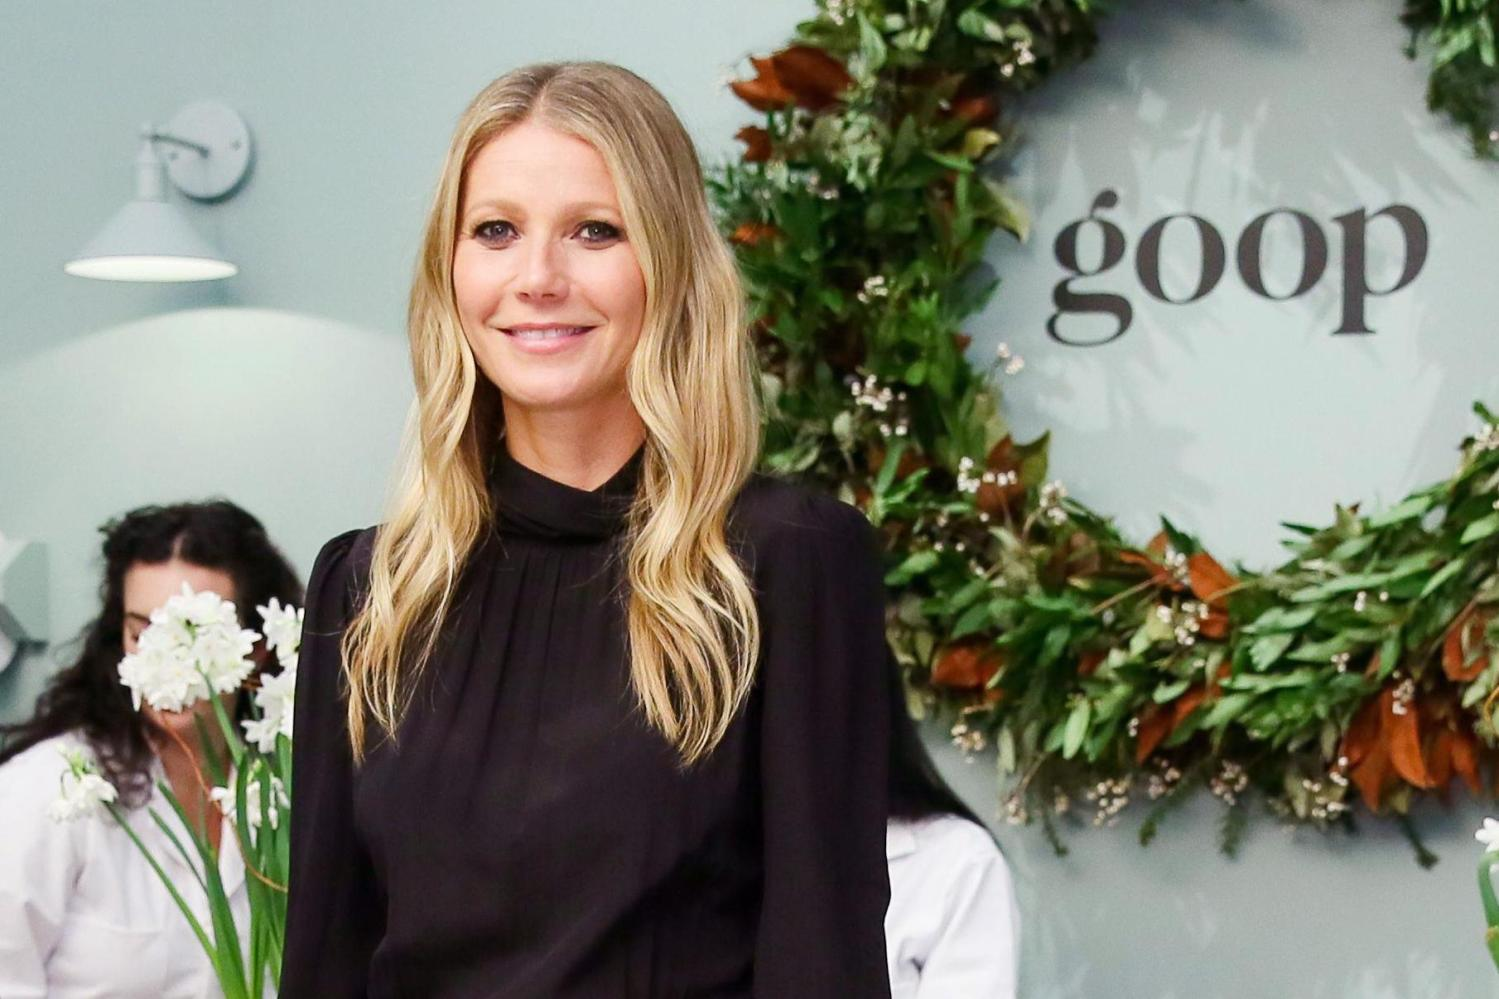 Gwyneth Paltrow and Goop: Allergic to fact-checking